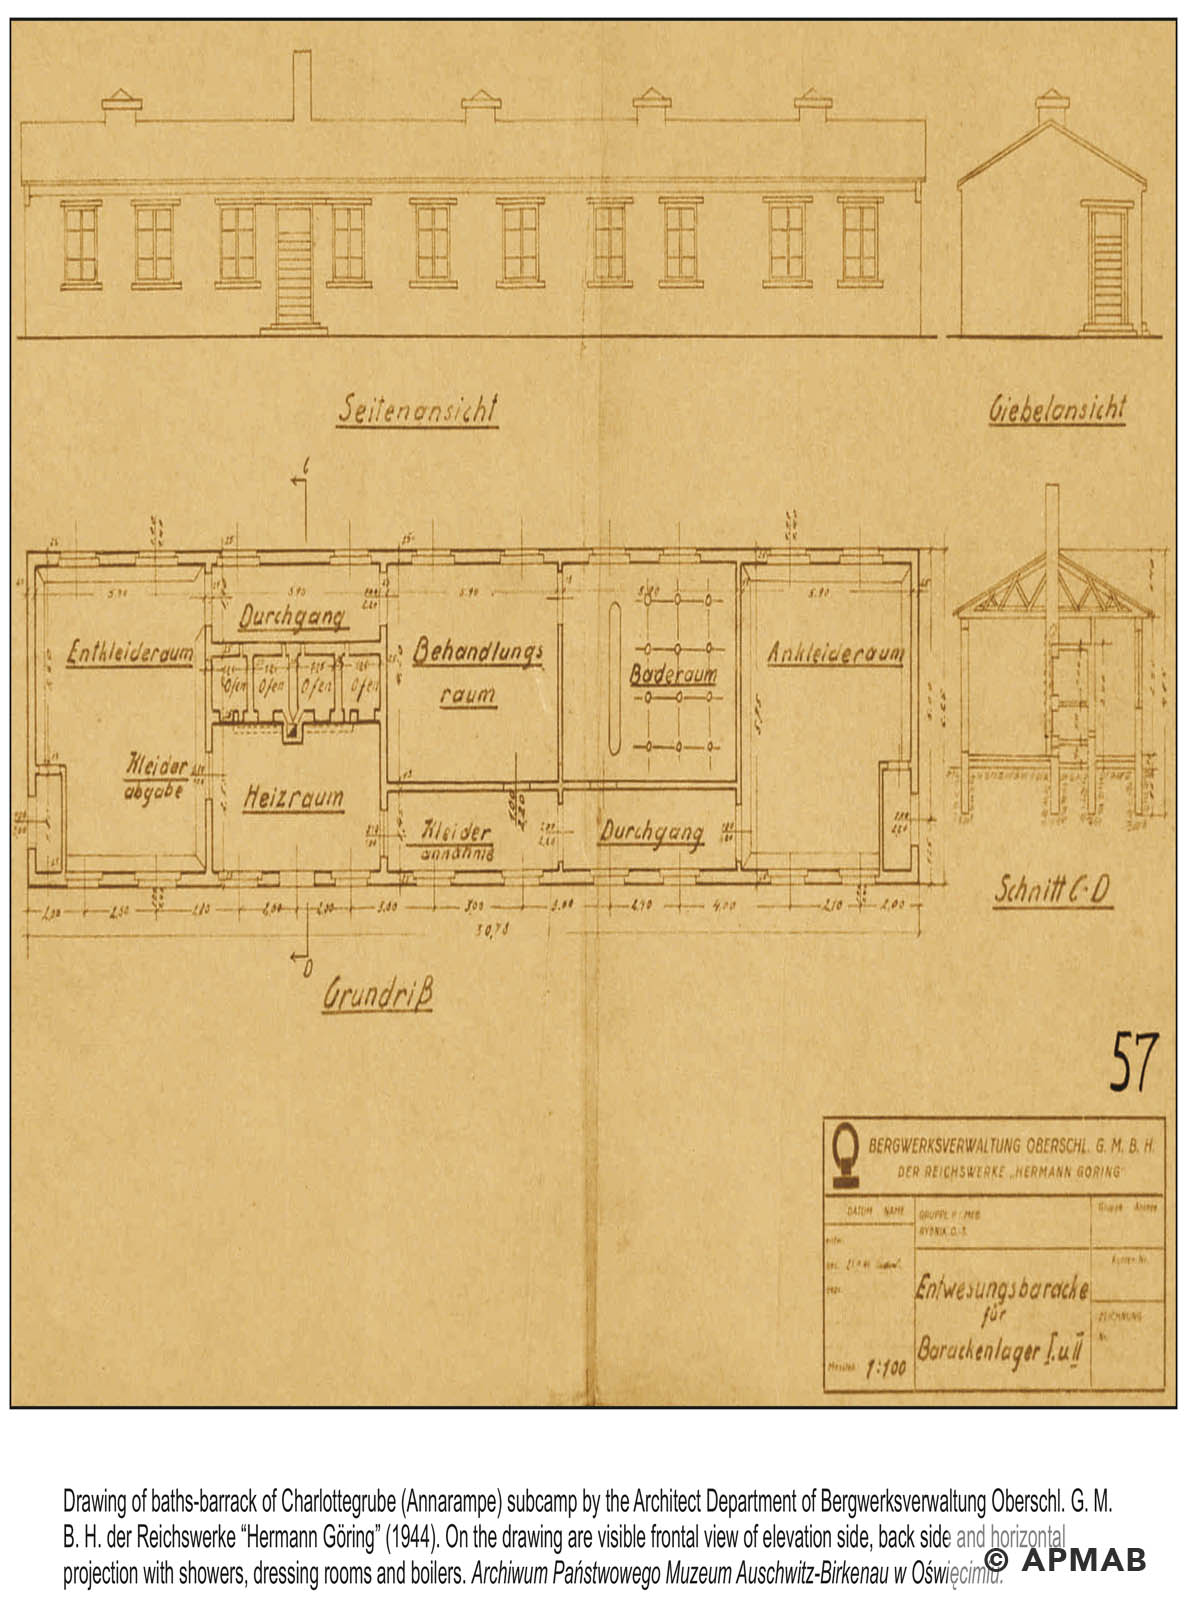 Technical drawing of bath house in Annarampe camp by the Bergswerkverwaltung. APMAB